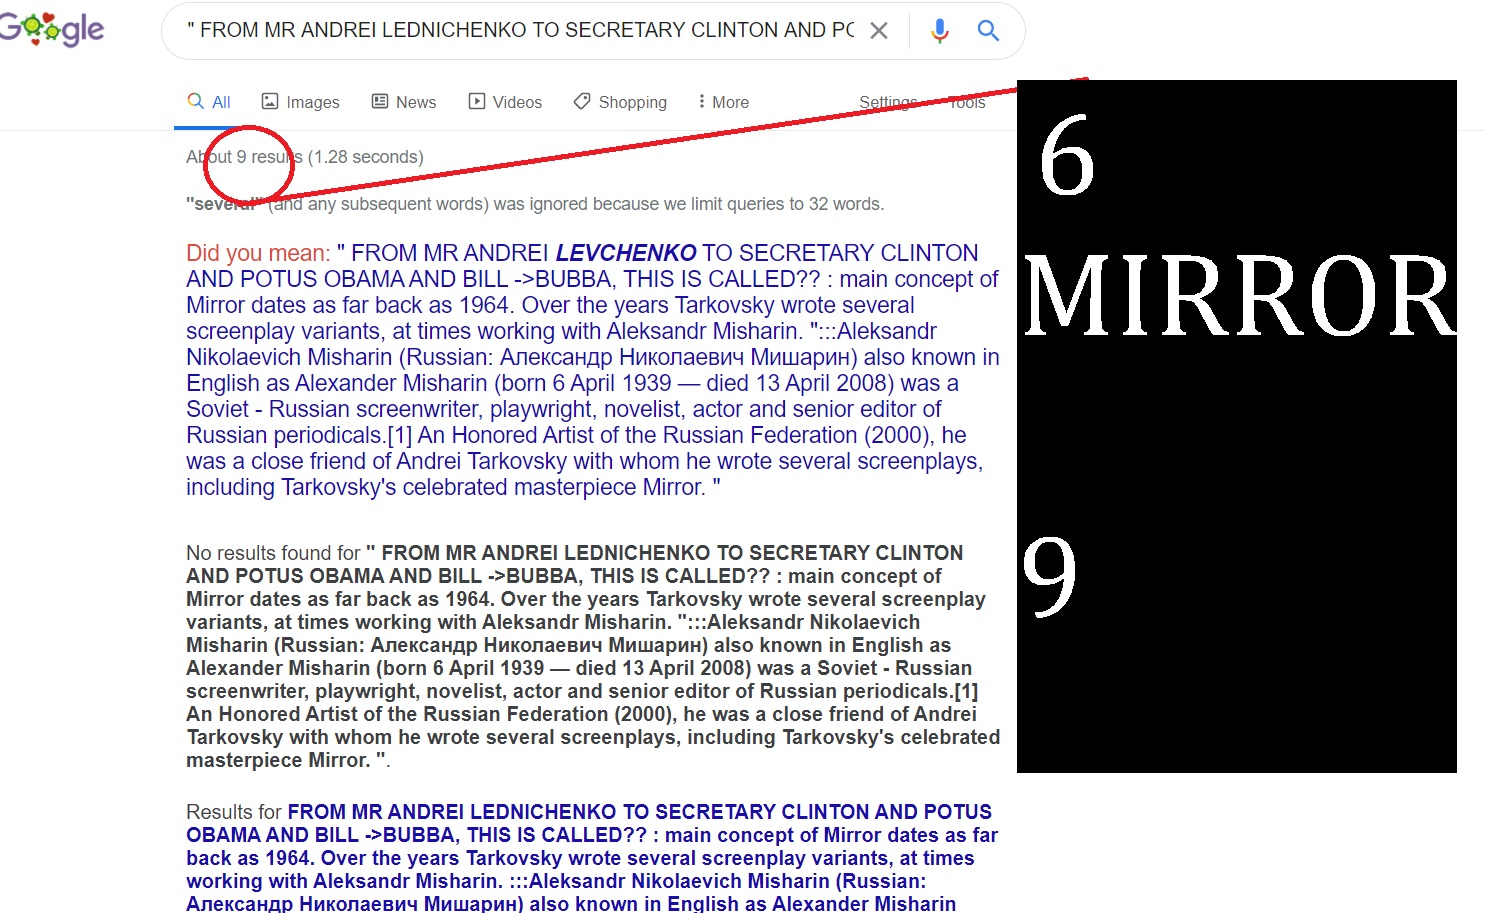 FROM ANDREI LEDNICHENKO TO HILLARY CLINTON JI AND BILL CLINTON - SO ANDREWI MIRROR MISHRA IN AND - WHATS HOWZ 6 AND 9 CAELED 69 AND ITS FACTORS SOUNDS TO U